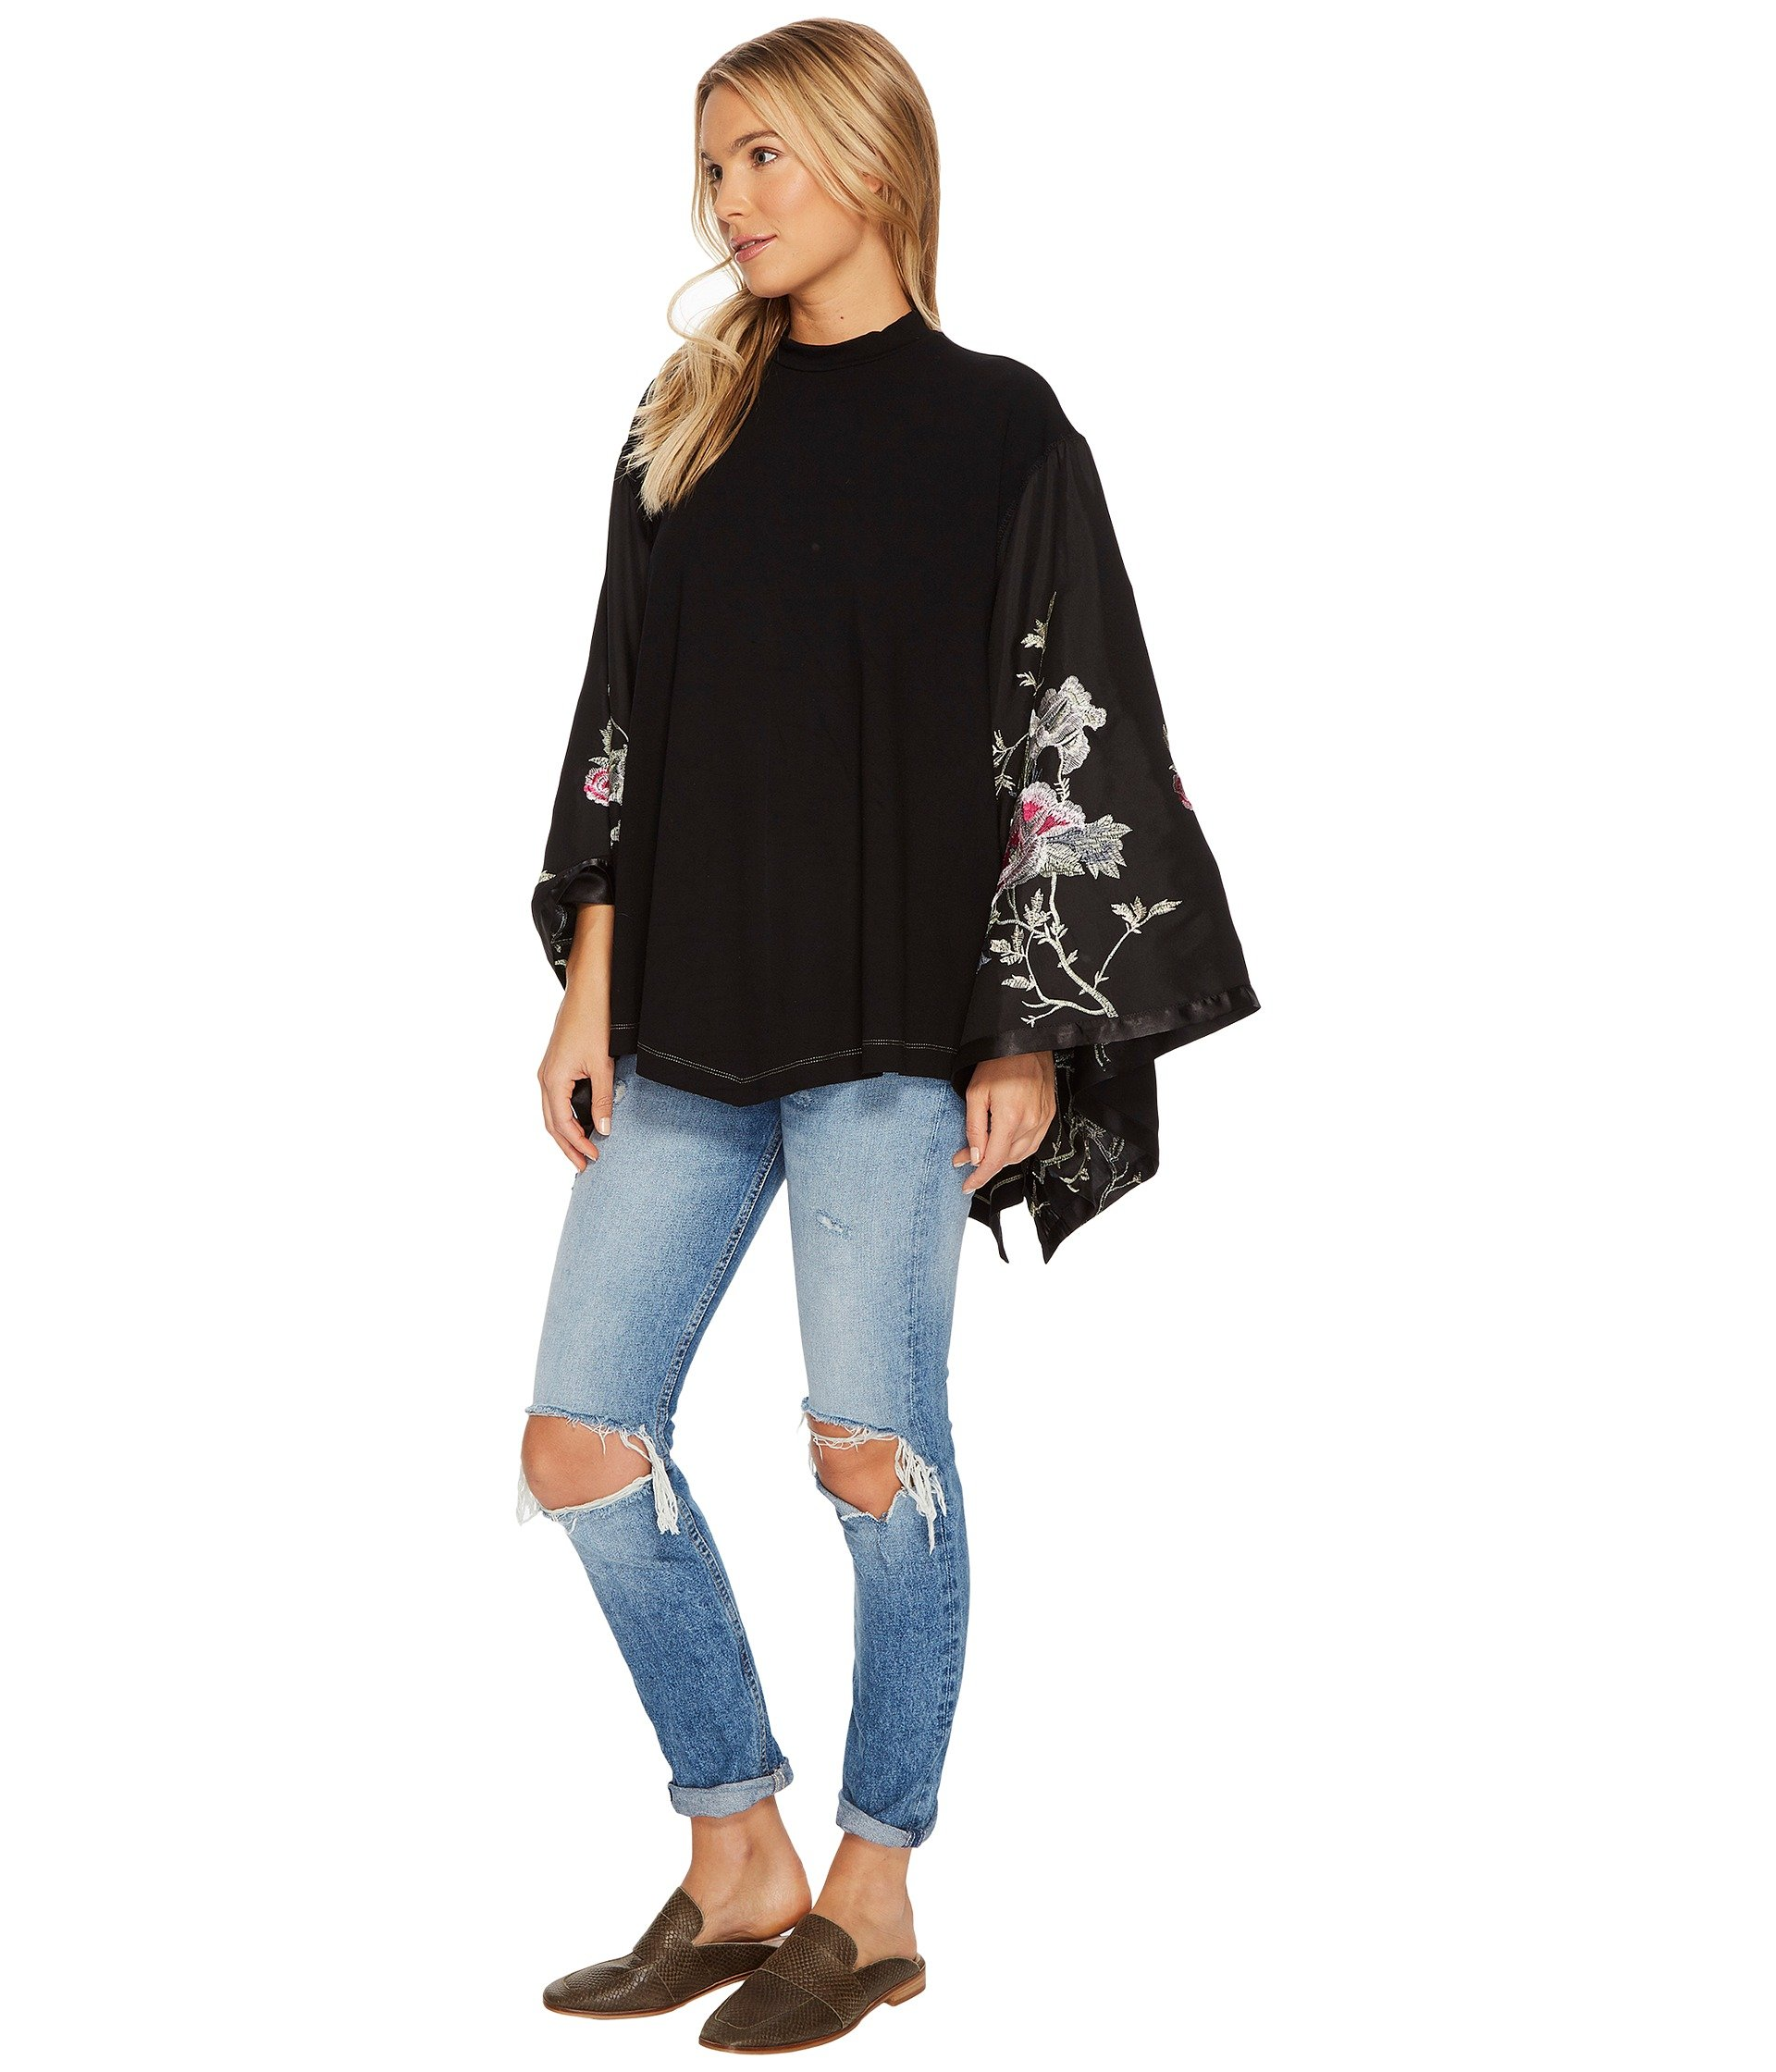 Free People Sydney's Tuesday Top - Weekly Picks by North Carolina style blogger Glitter, Inc.